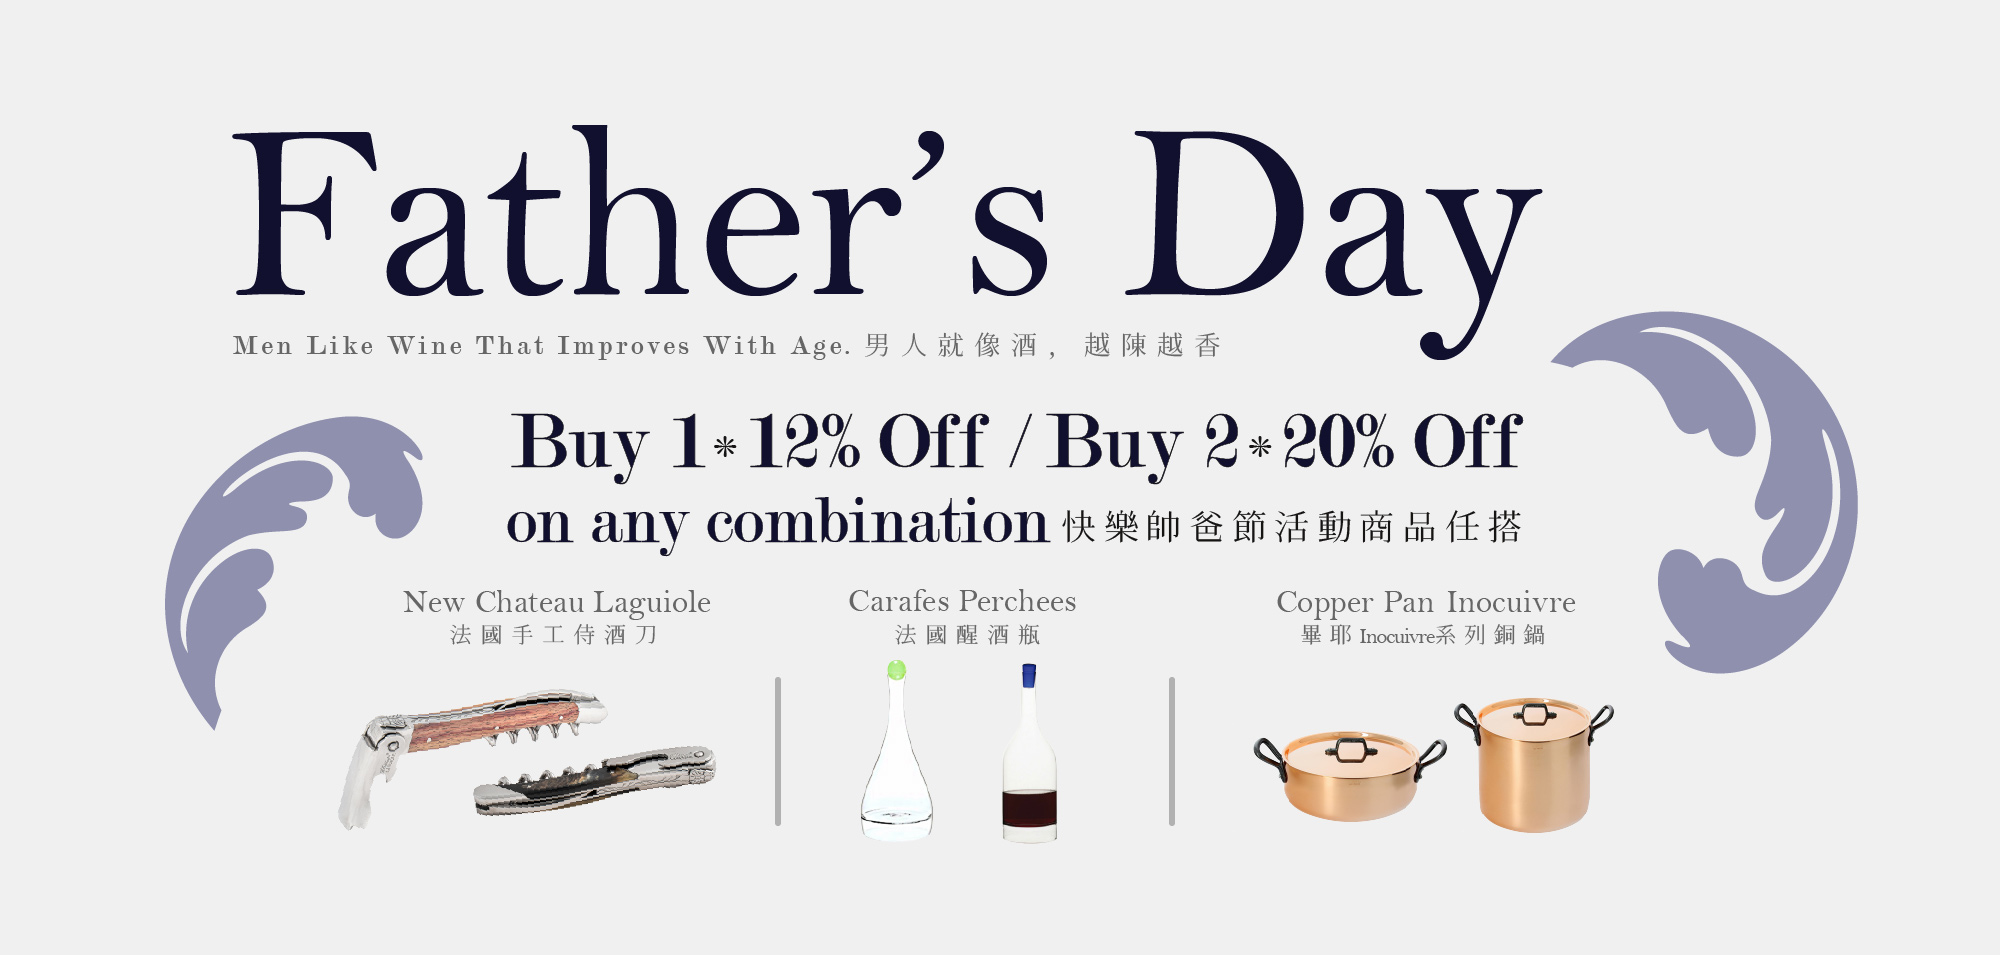 Chateau Laguiole handmade corkscrew + de Buyer Copper pans + Decanters: All June Father's day! Buy 1*12% OFF / Buy 2*20% OFF